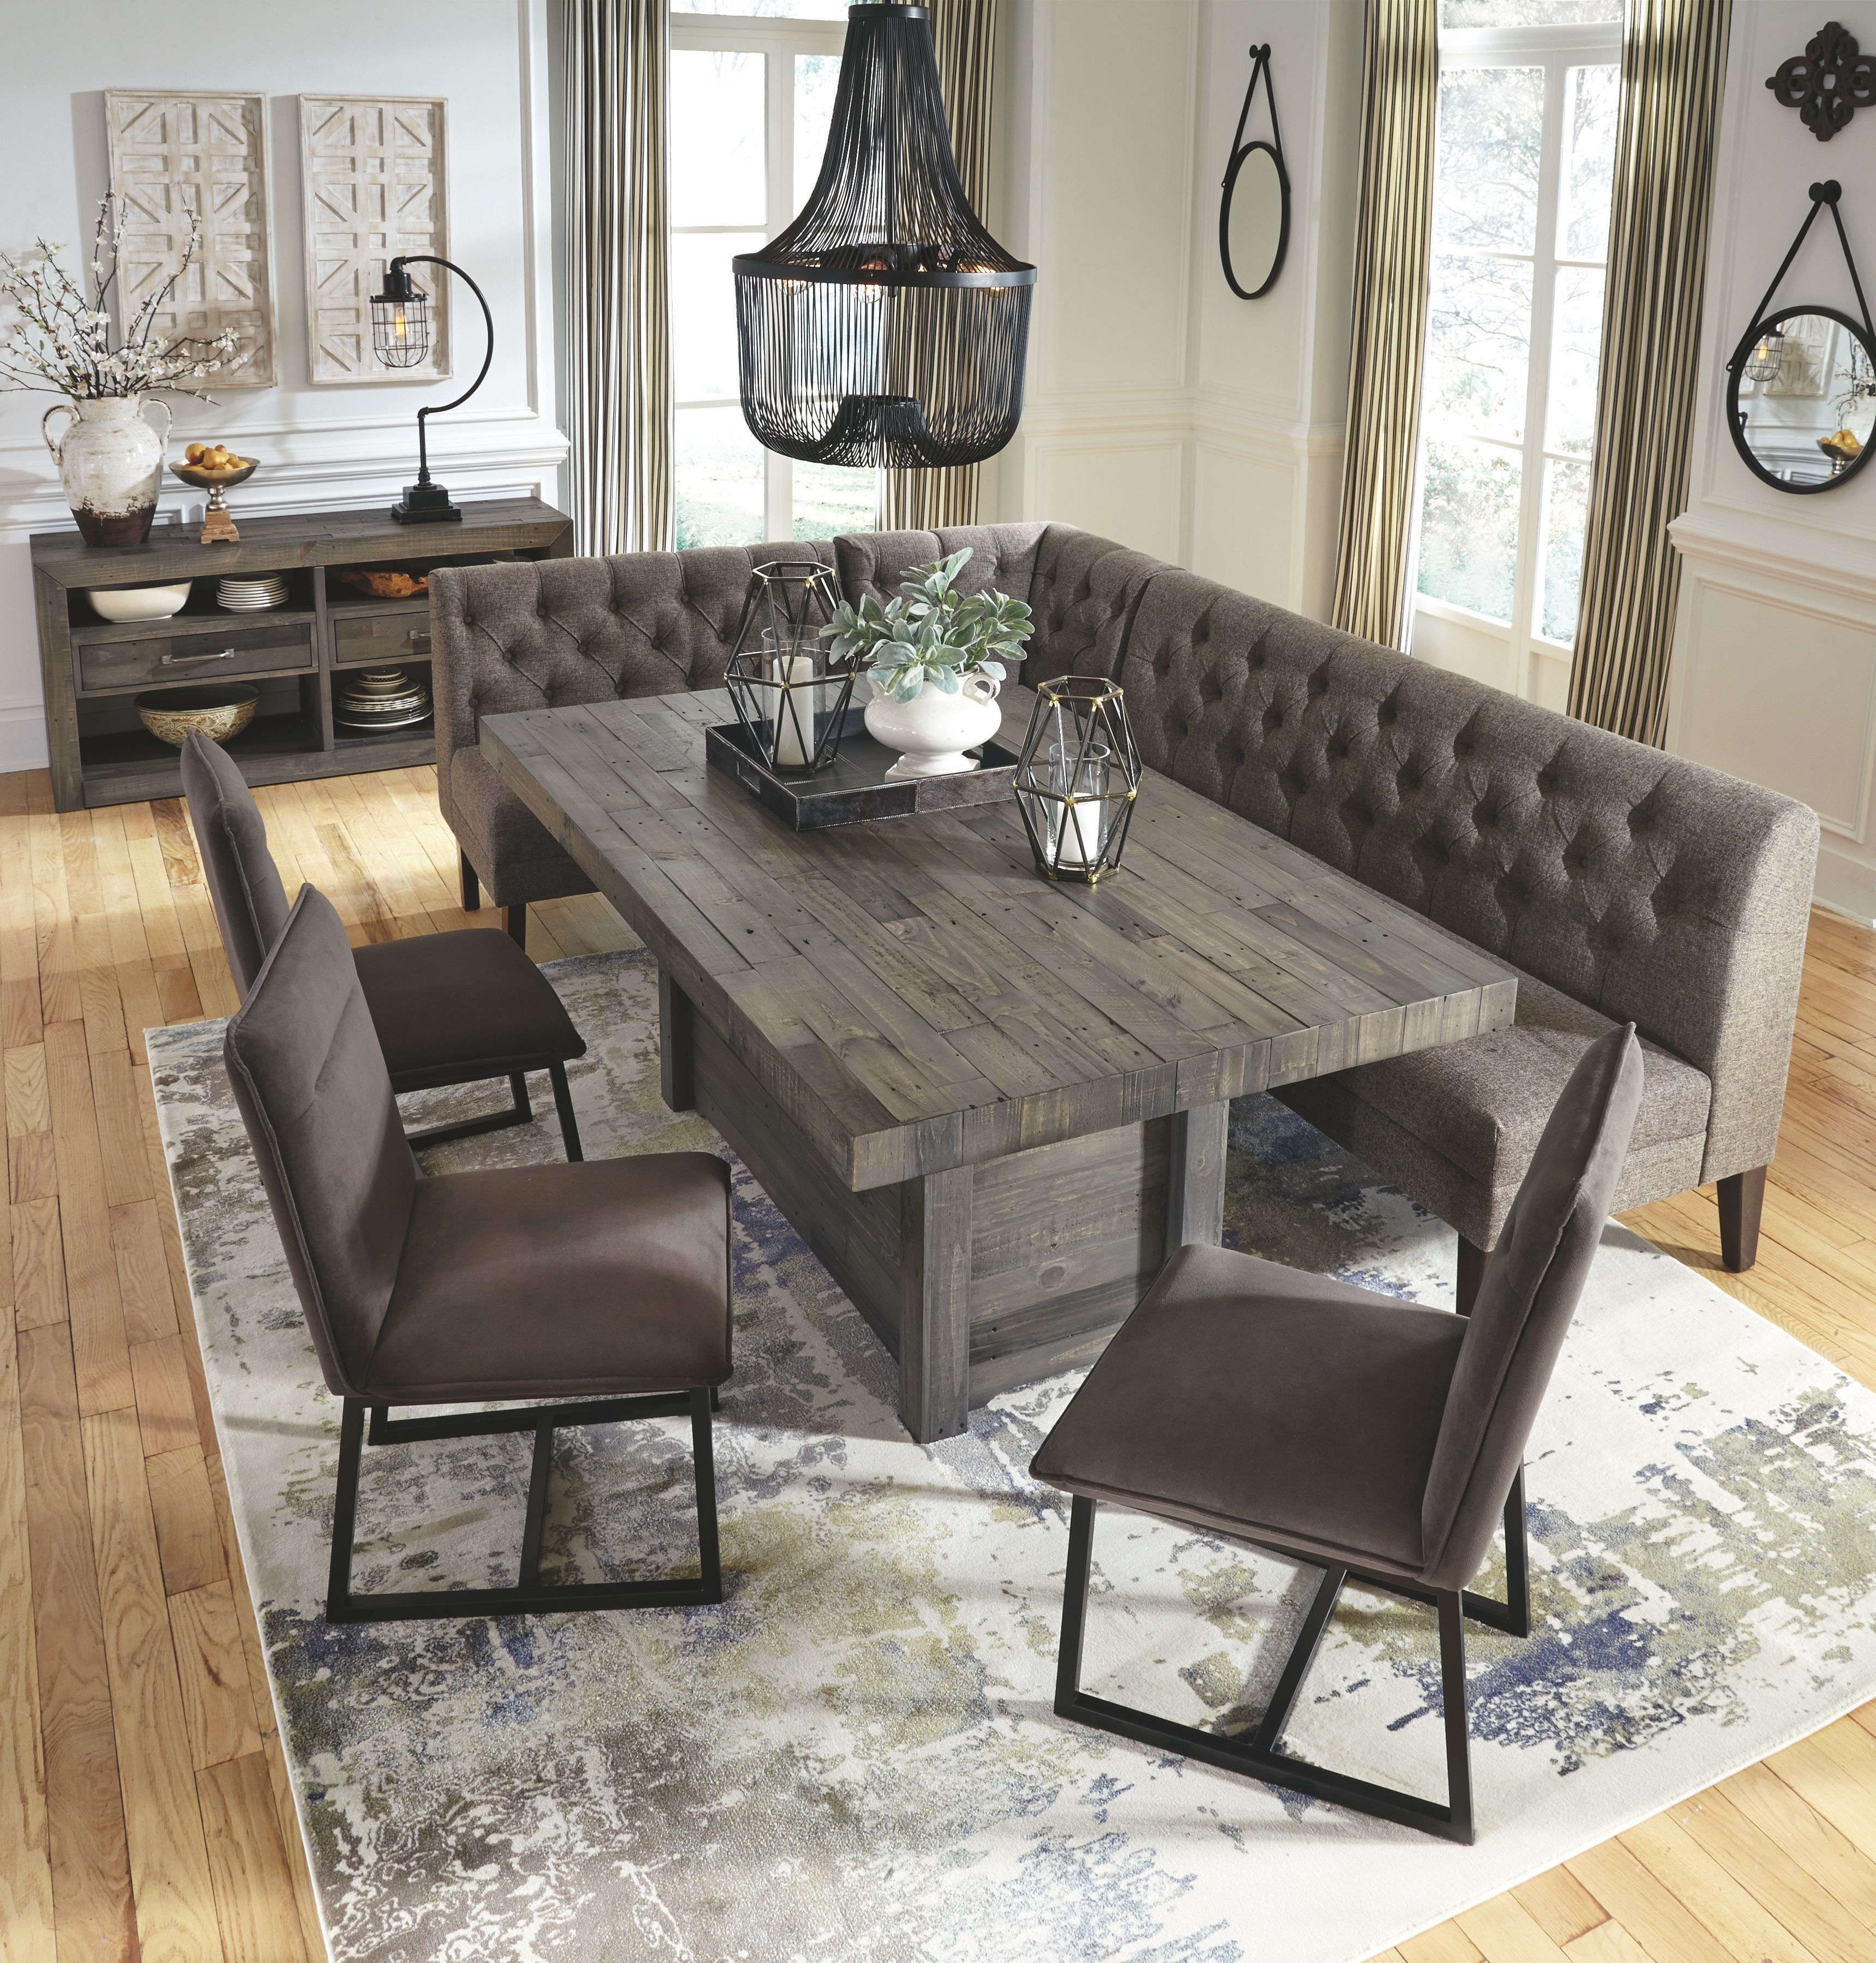 Dining Room Ideas Decor A Farmhouse Style Looks Less Formal Which Means You Can Really Feel The Dining Room Design Dining Room Furniture Dining Room Remodel